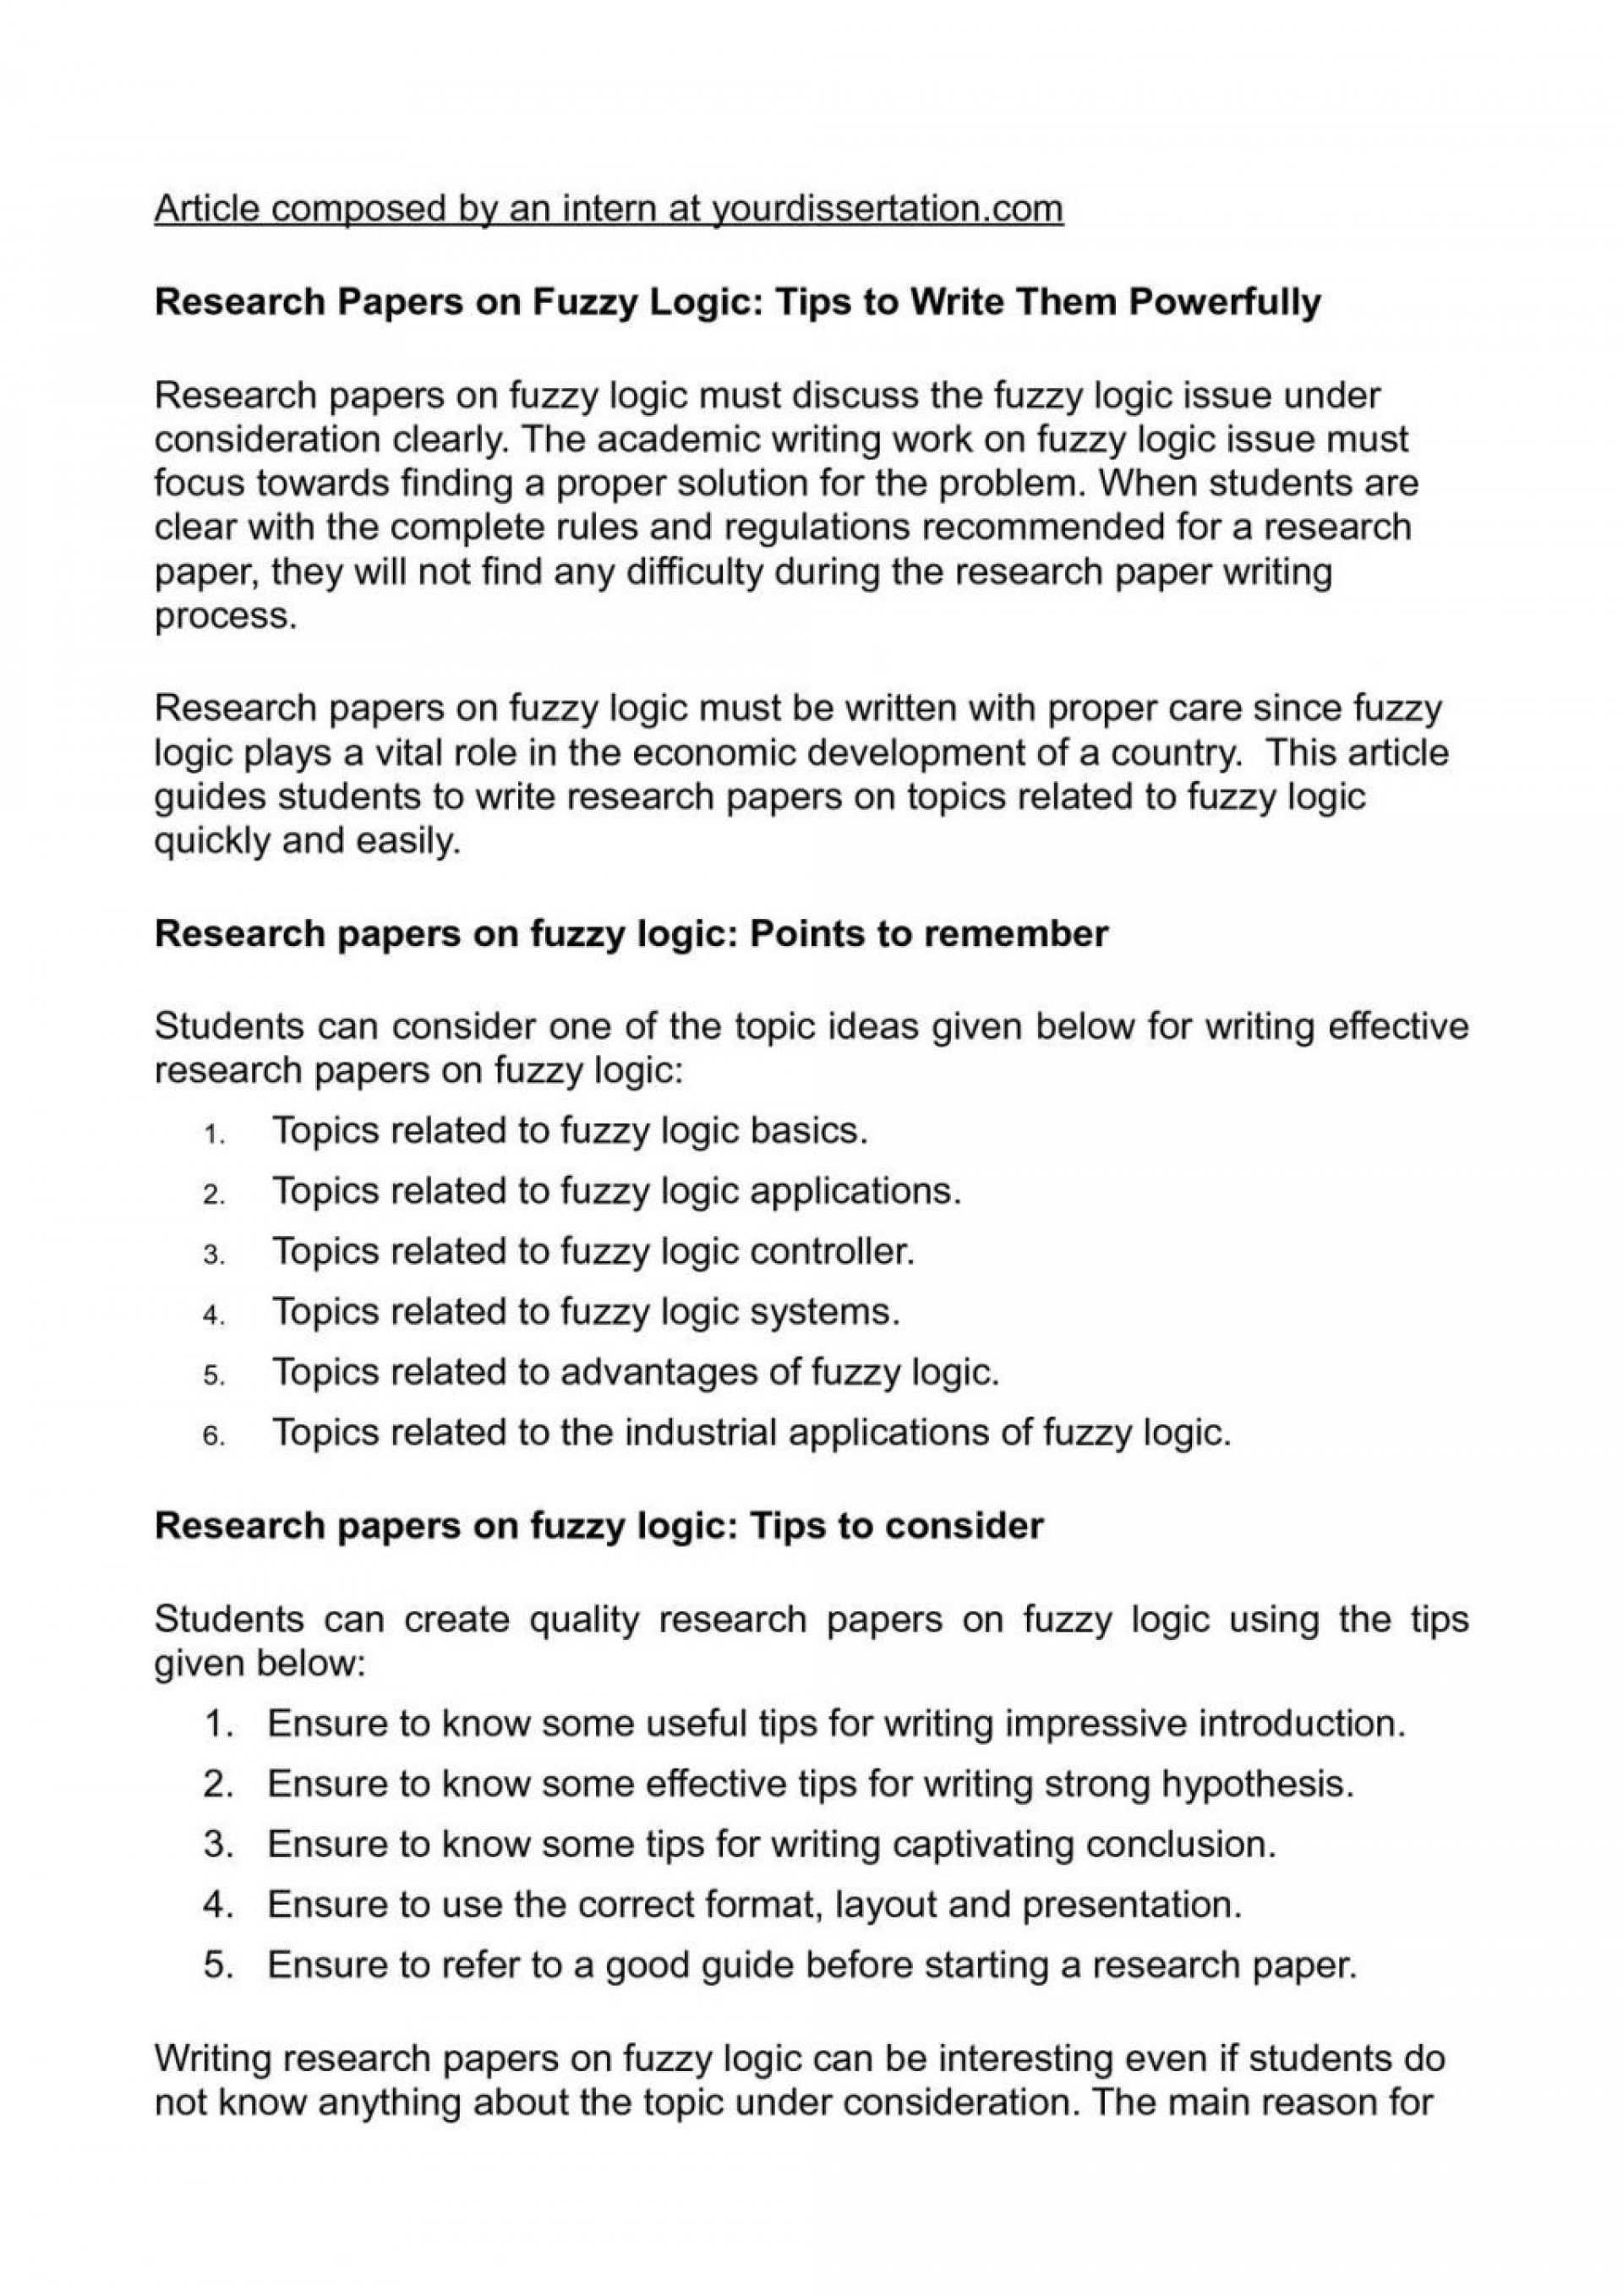 026 20research Paper Samples Fun Topics To Write On Psychology Economics20 1024x1449 About For Wonderful A Research Controversial Biology 1920